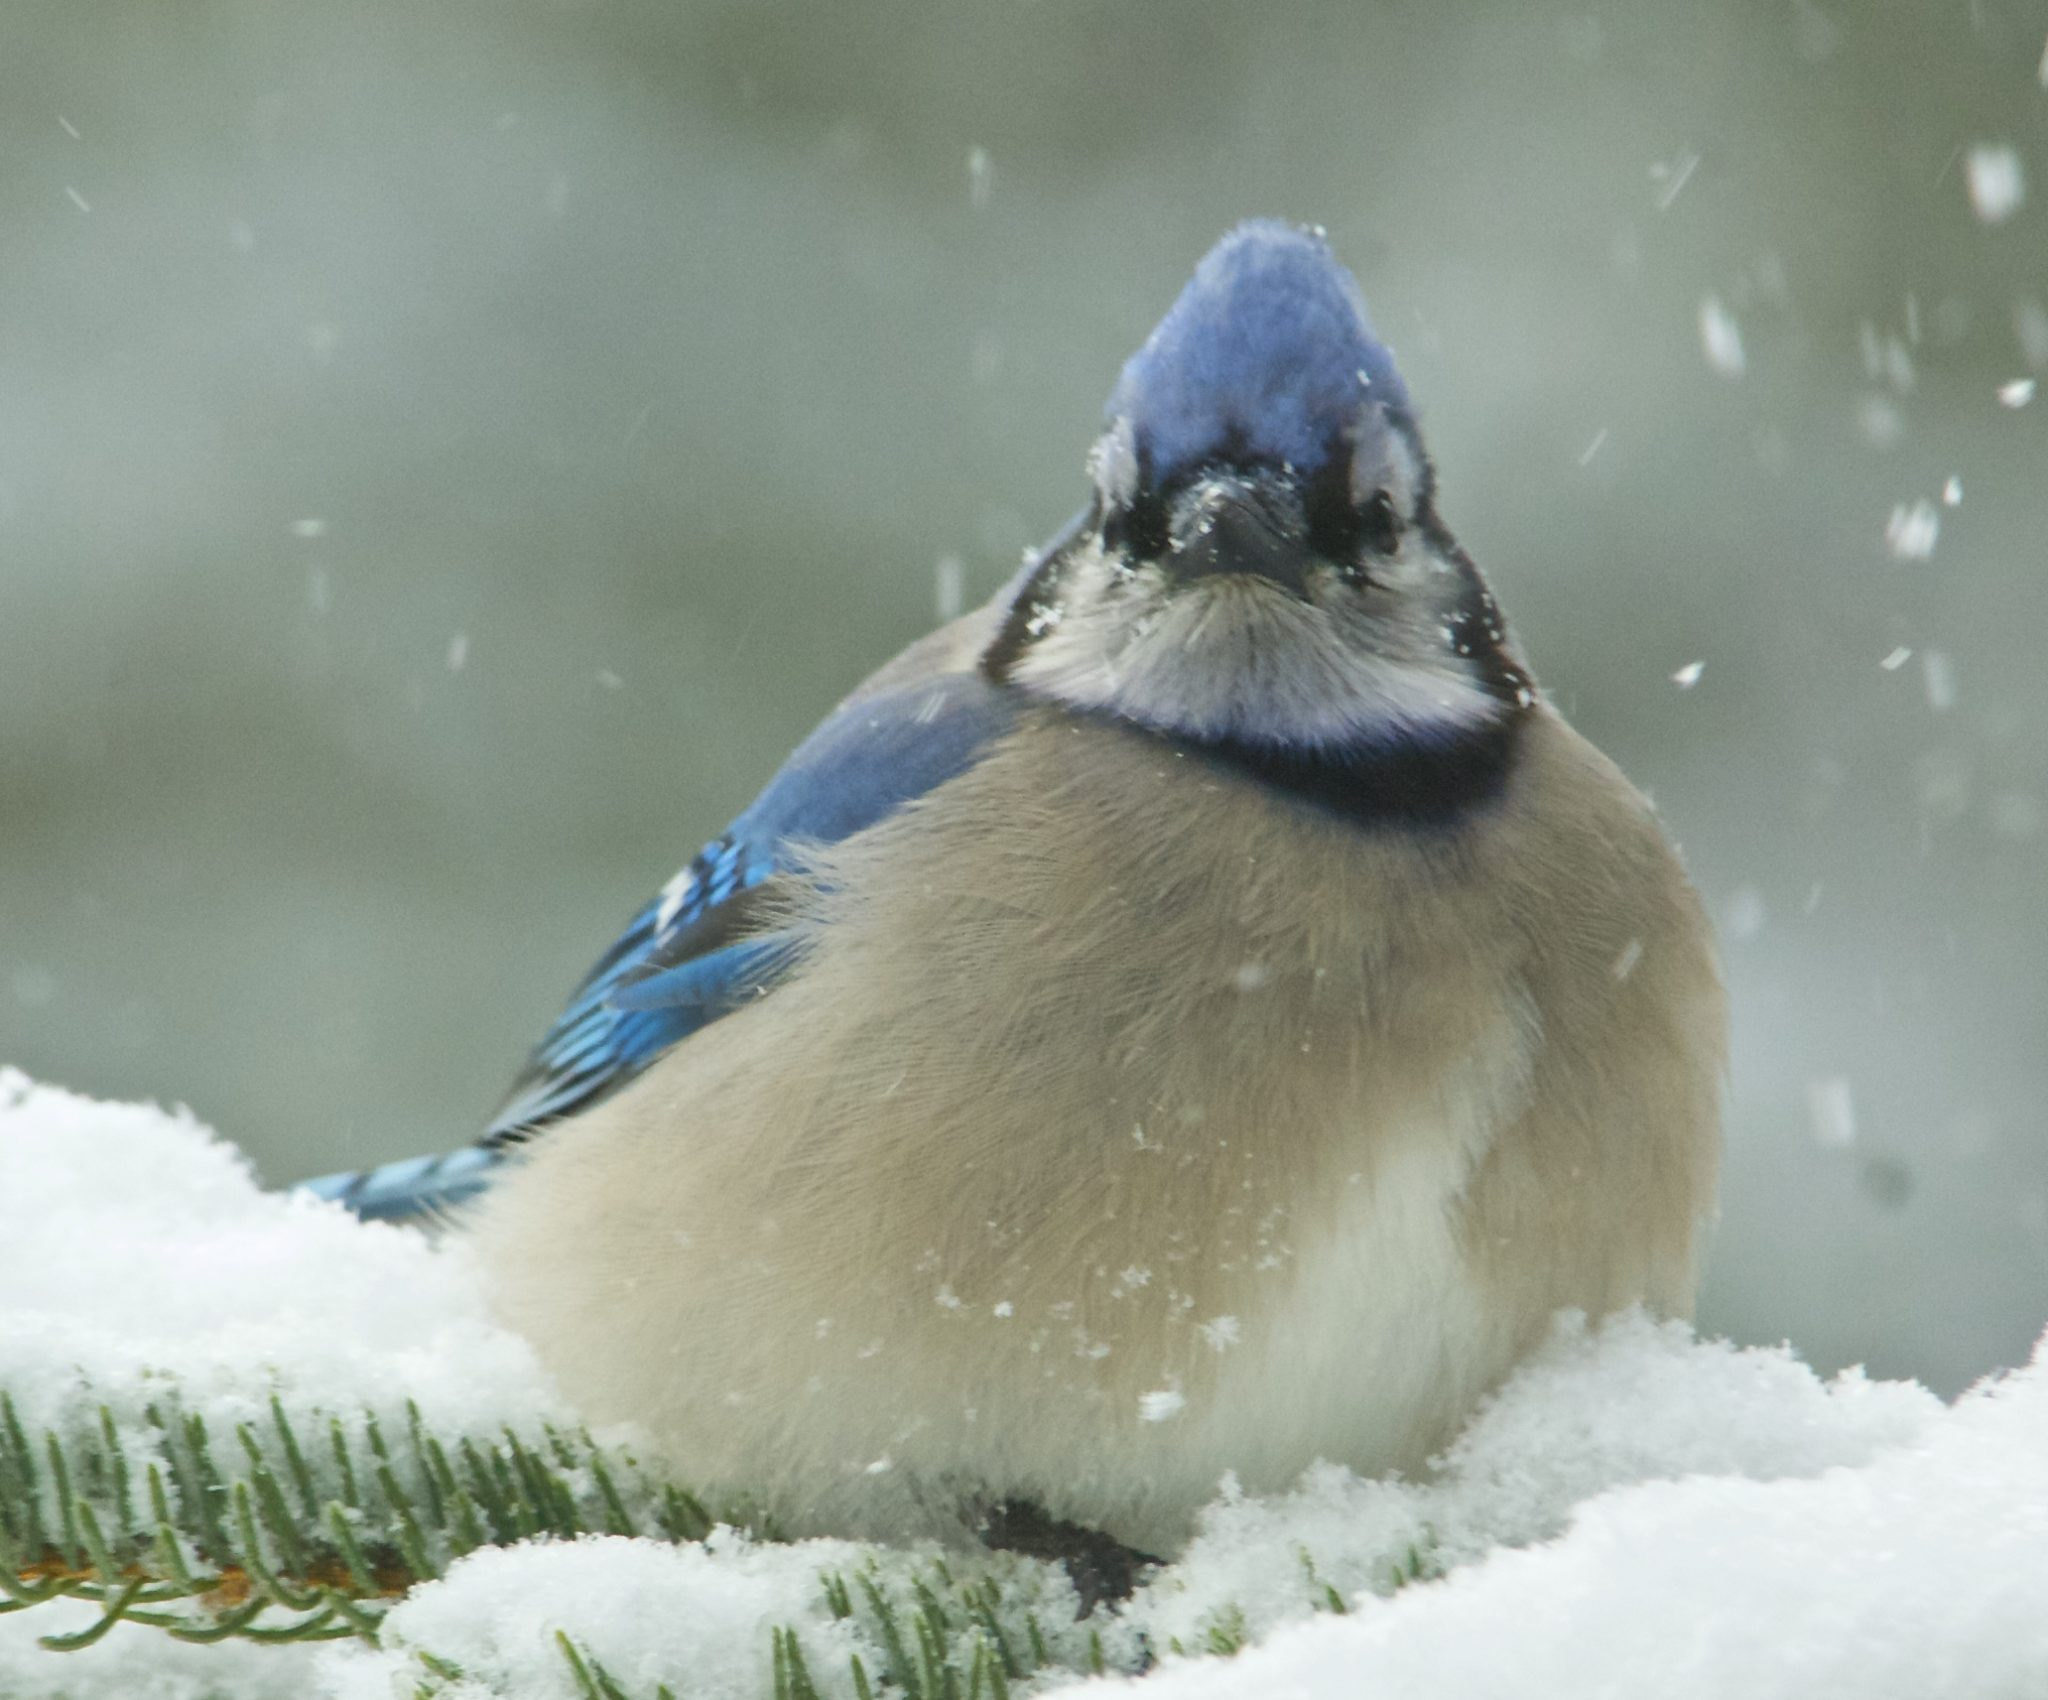 How to attract birds in the winter